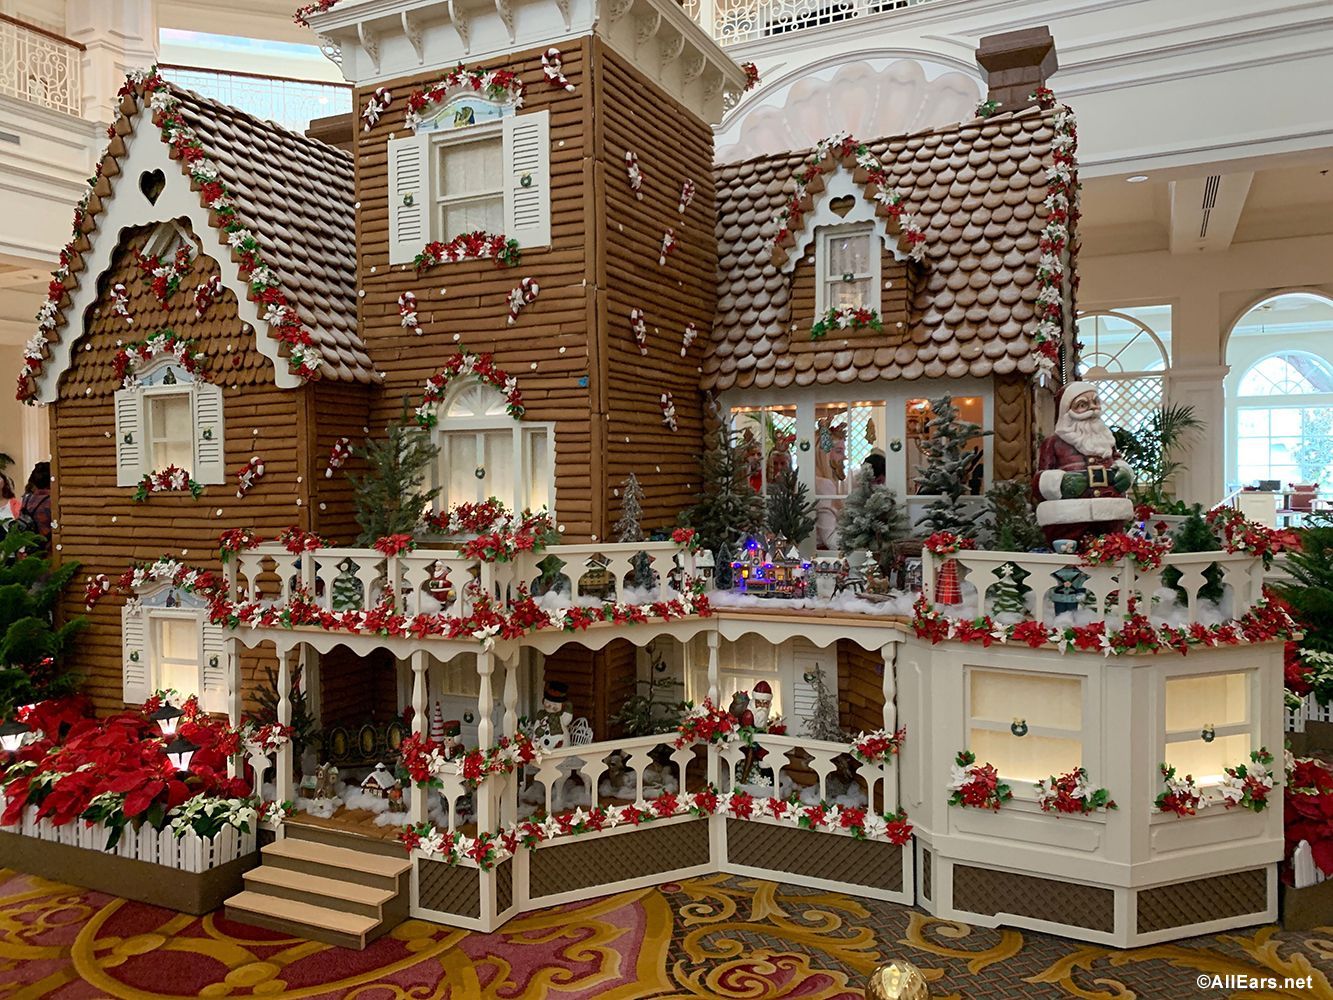 All Ears Tv The Best Of The Holidays At Walt Disney World